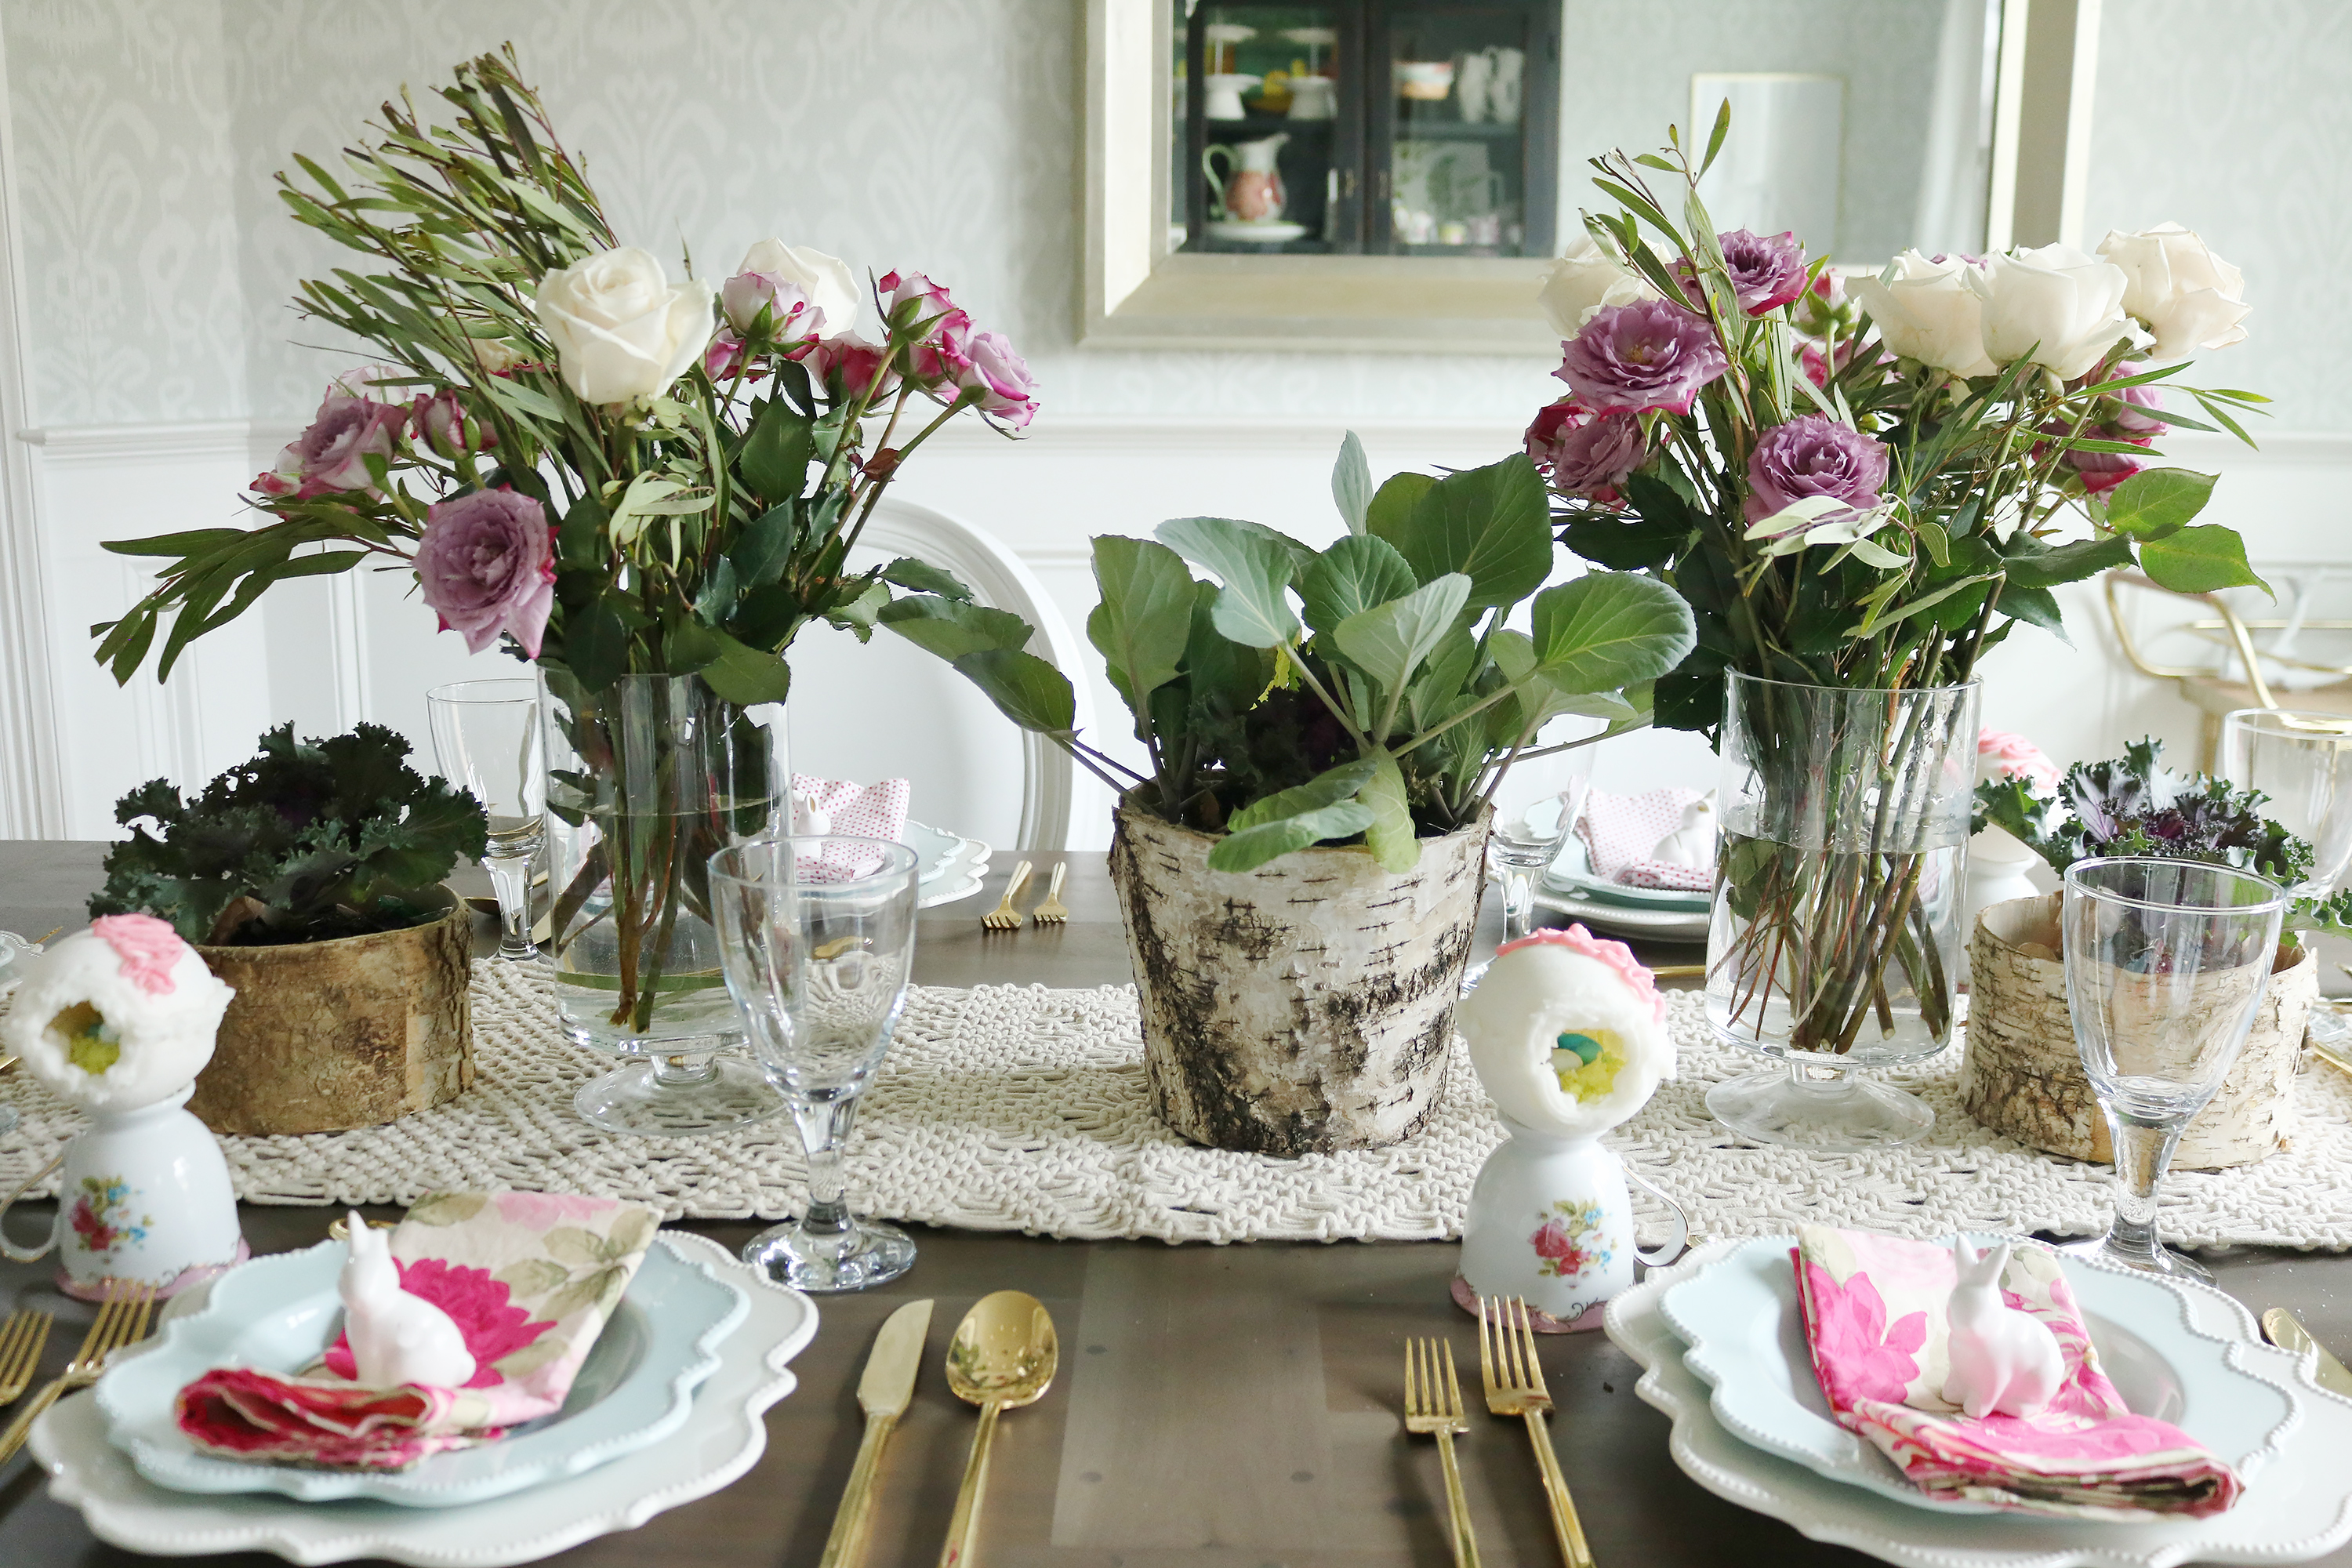 Garden-Inspired Easter Table with Sugar Easter Eggs || Darling Darleen